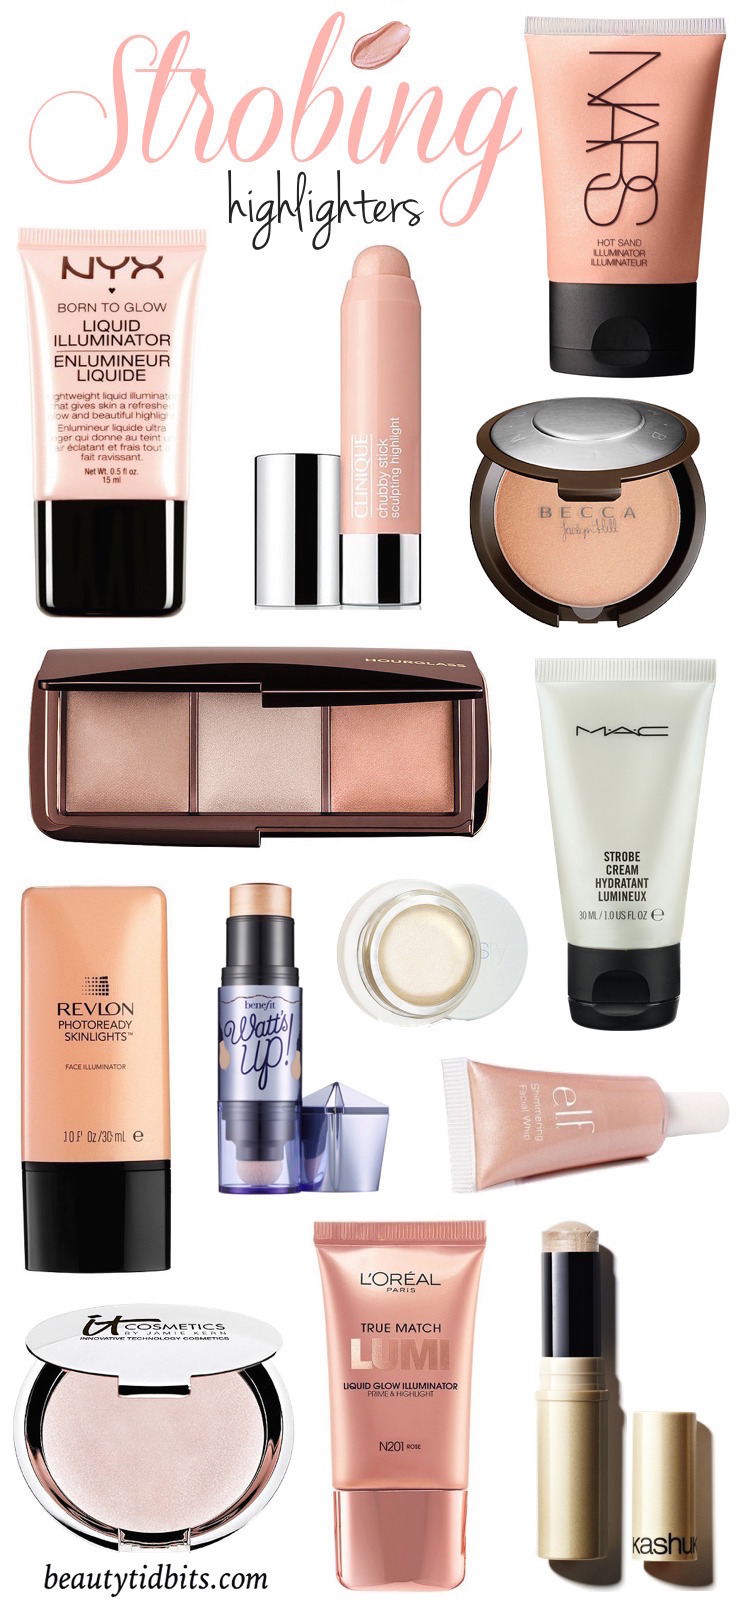 The Best Highlighting Products for Strobing!